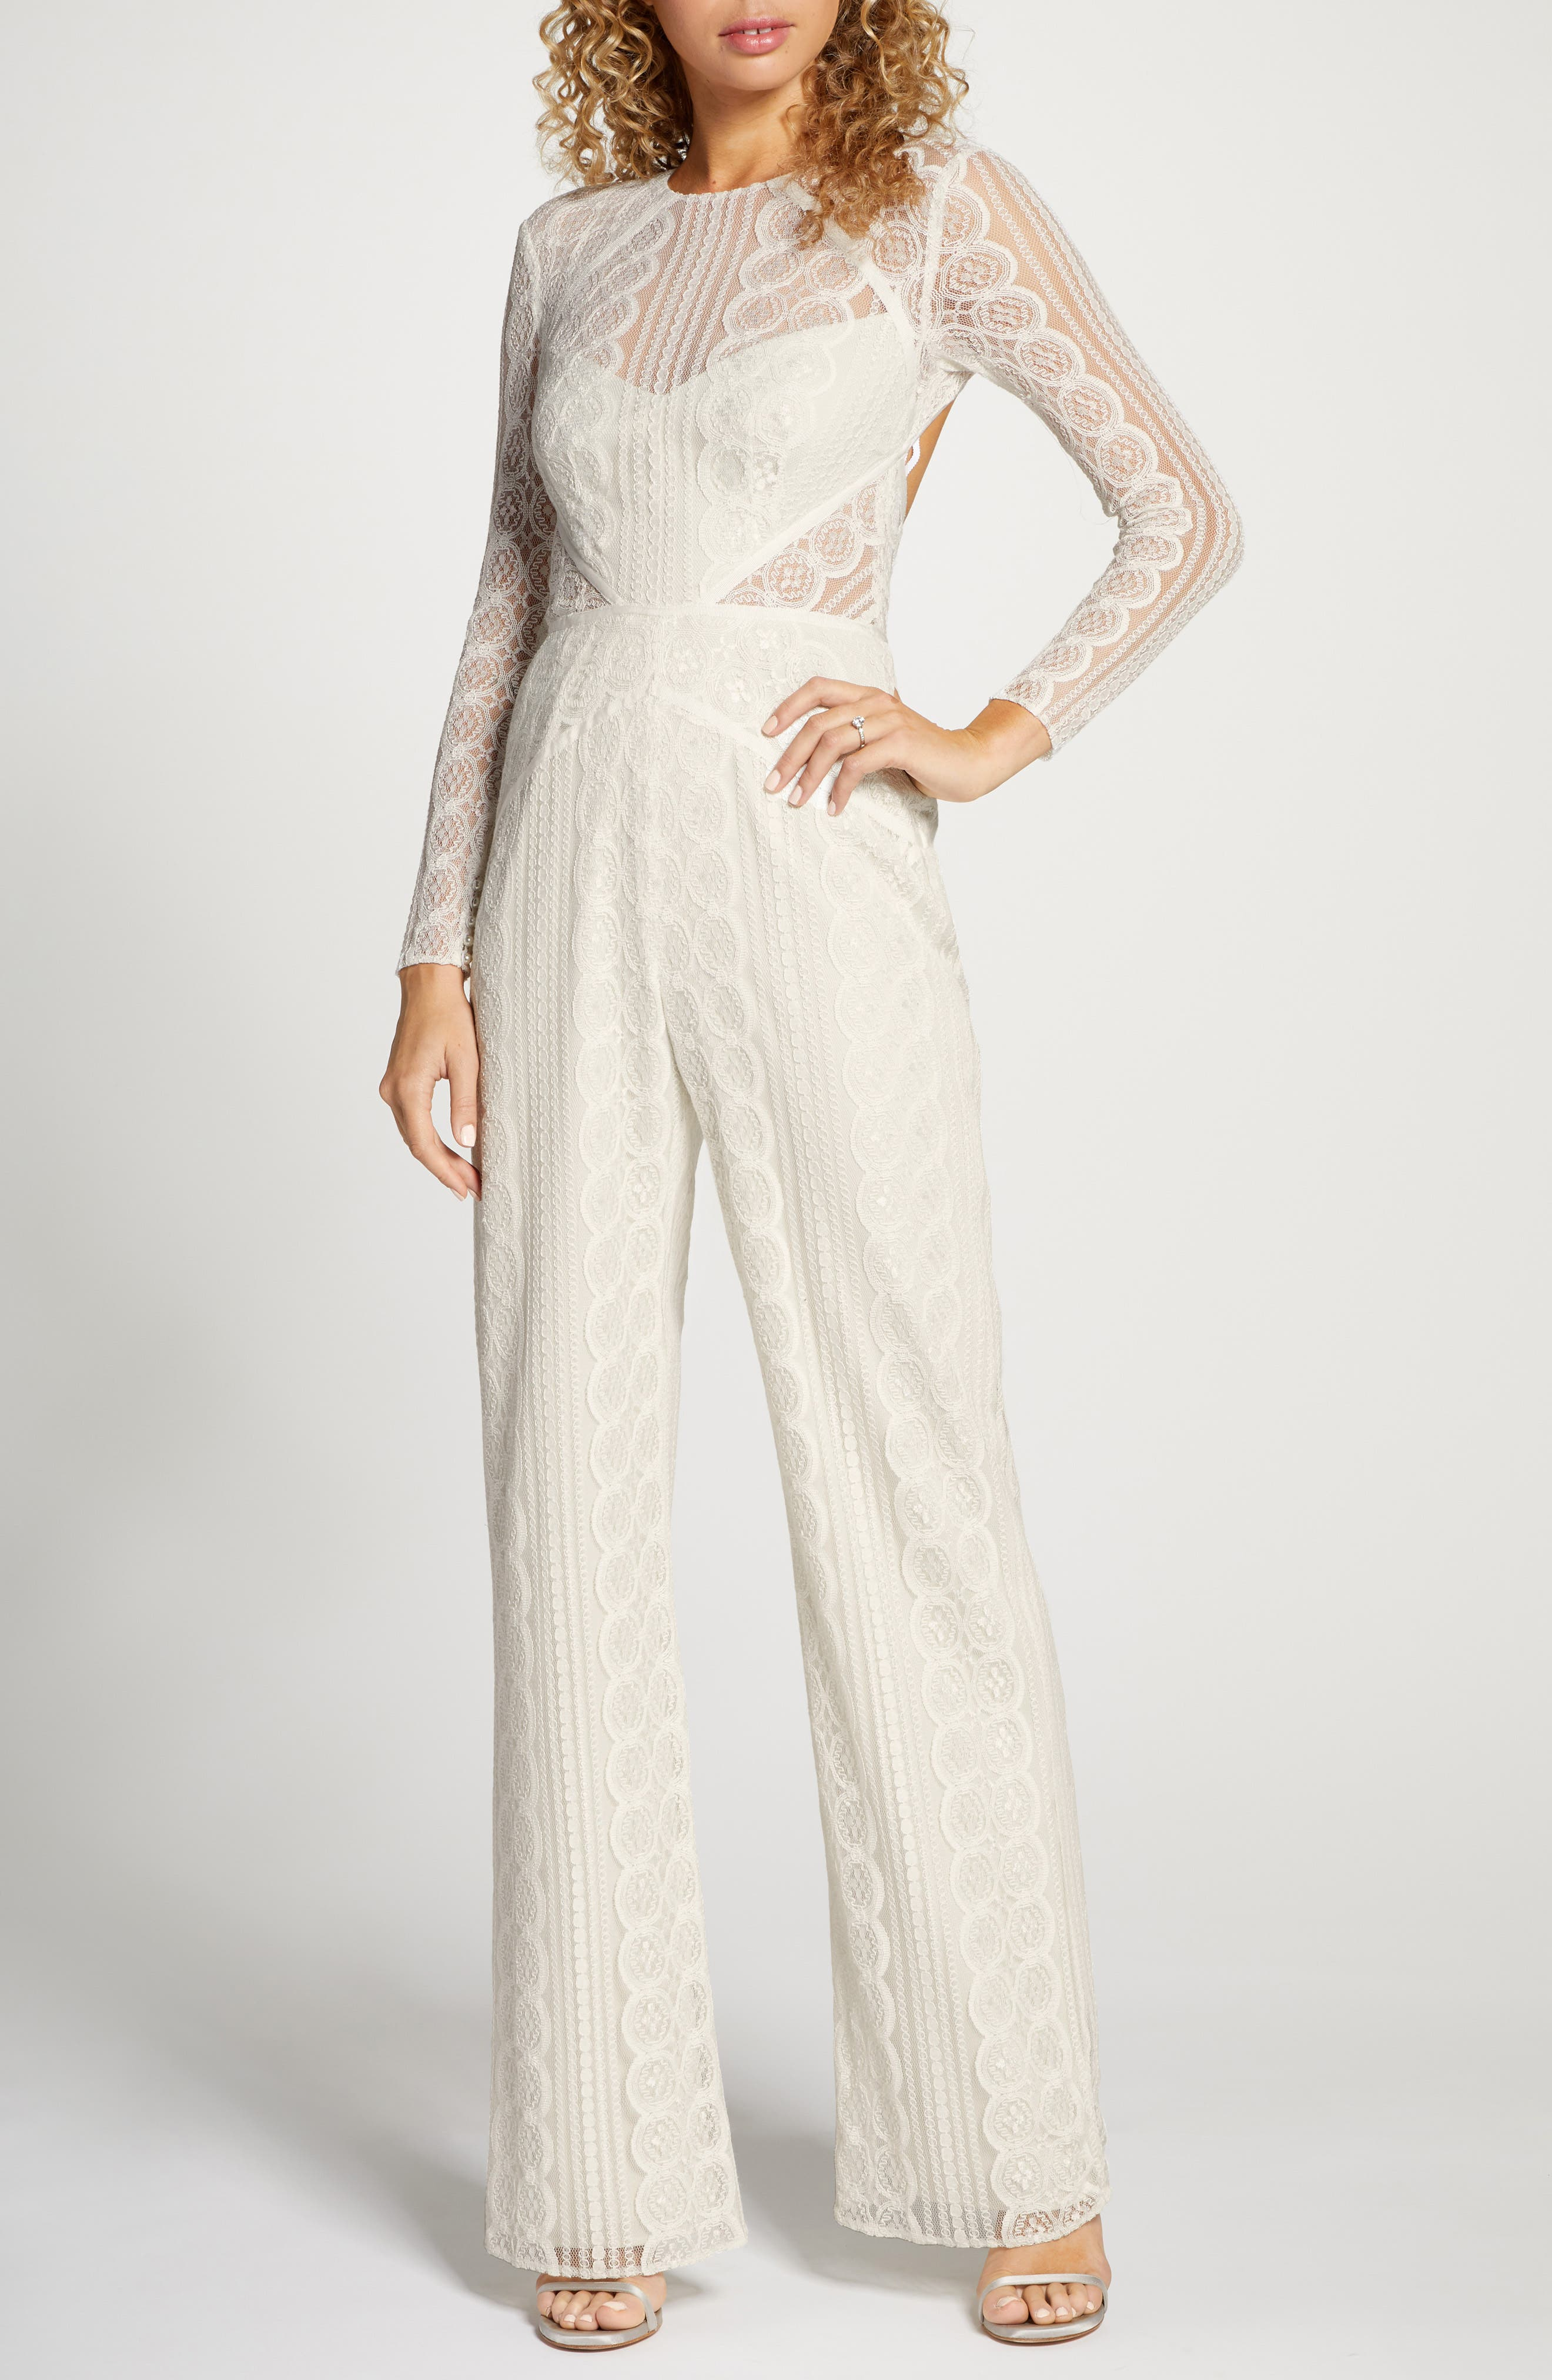 60s Wedding Dresses | 70s Wedding Dresses Womens By Watters Curtis Long Sleeve Lace Wedding Jumpsuit Size 15 - Ivory $510.00 AT vintagedancer.com